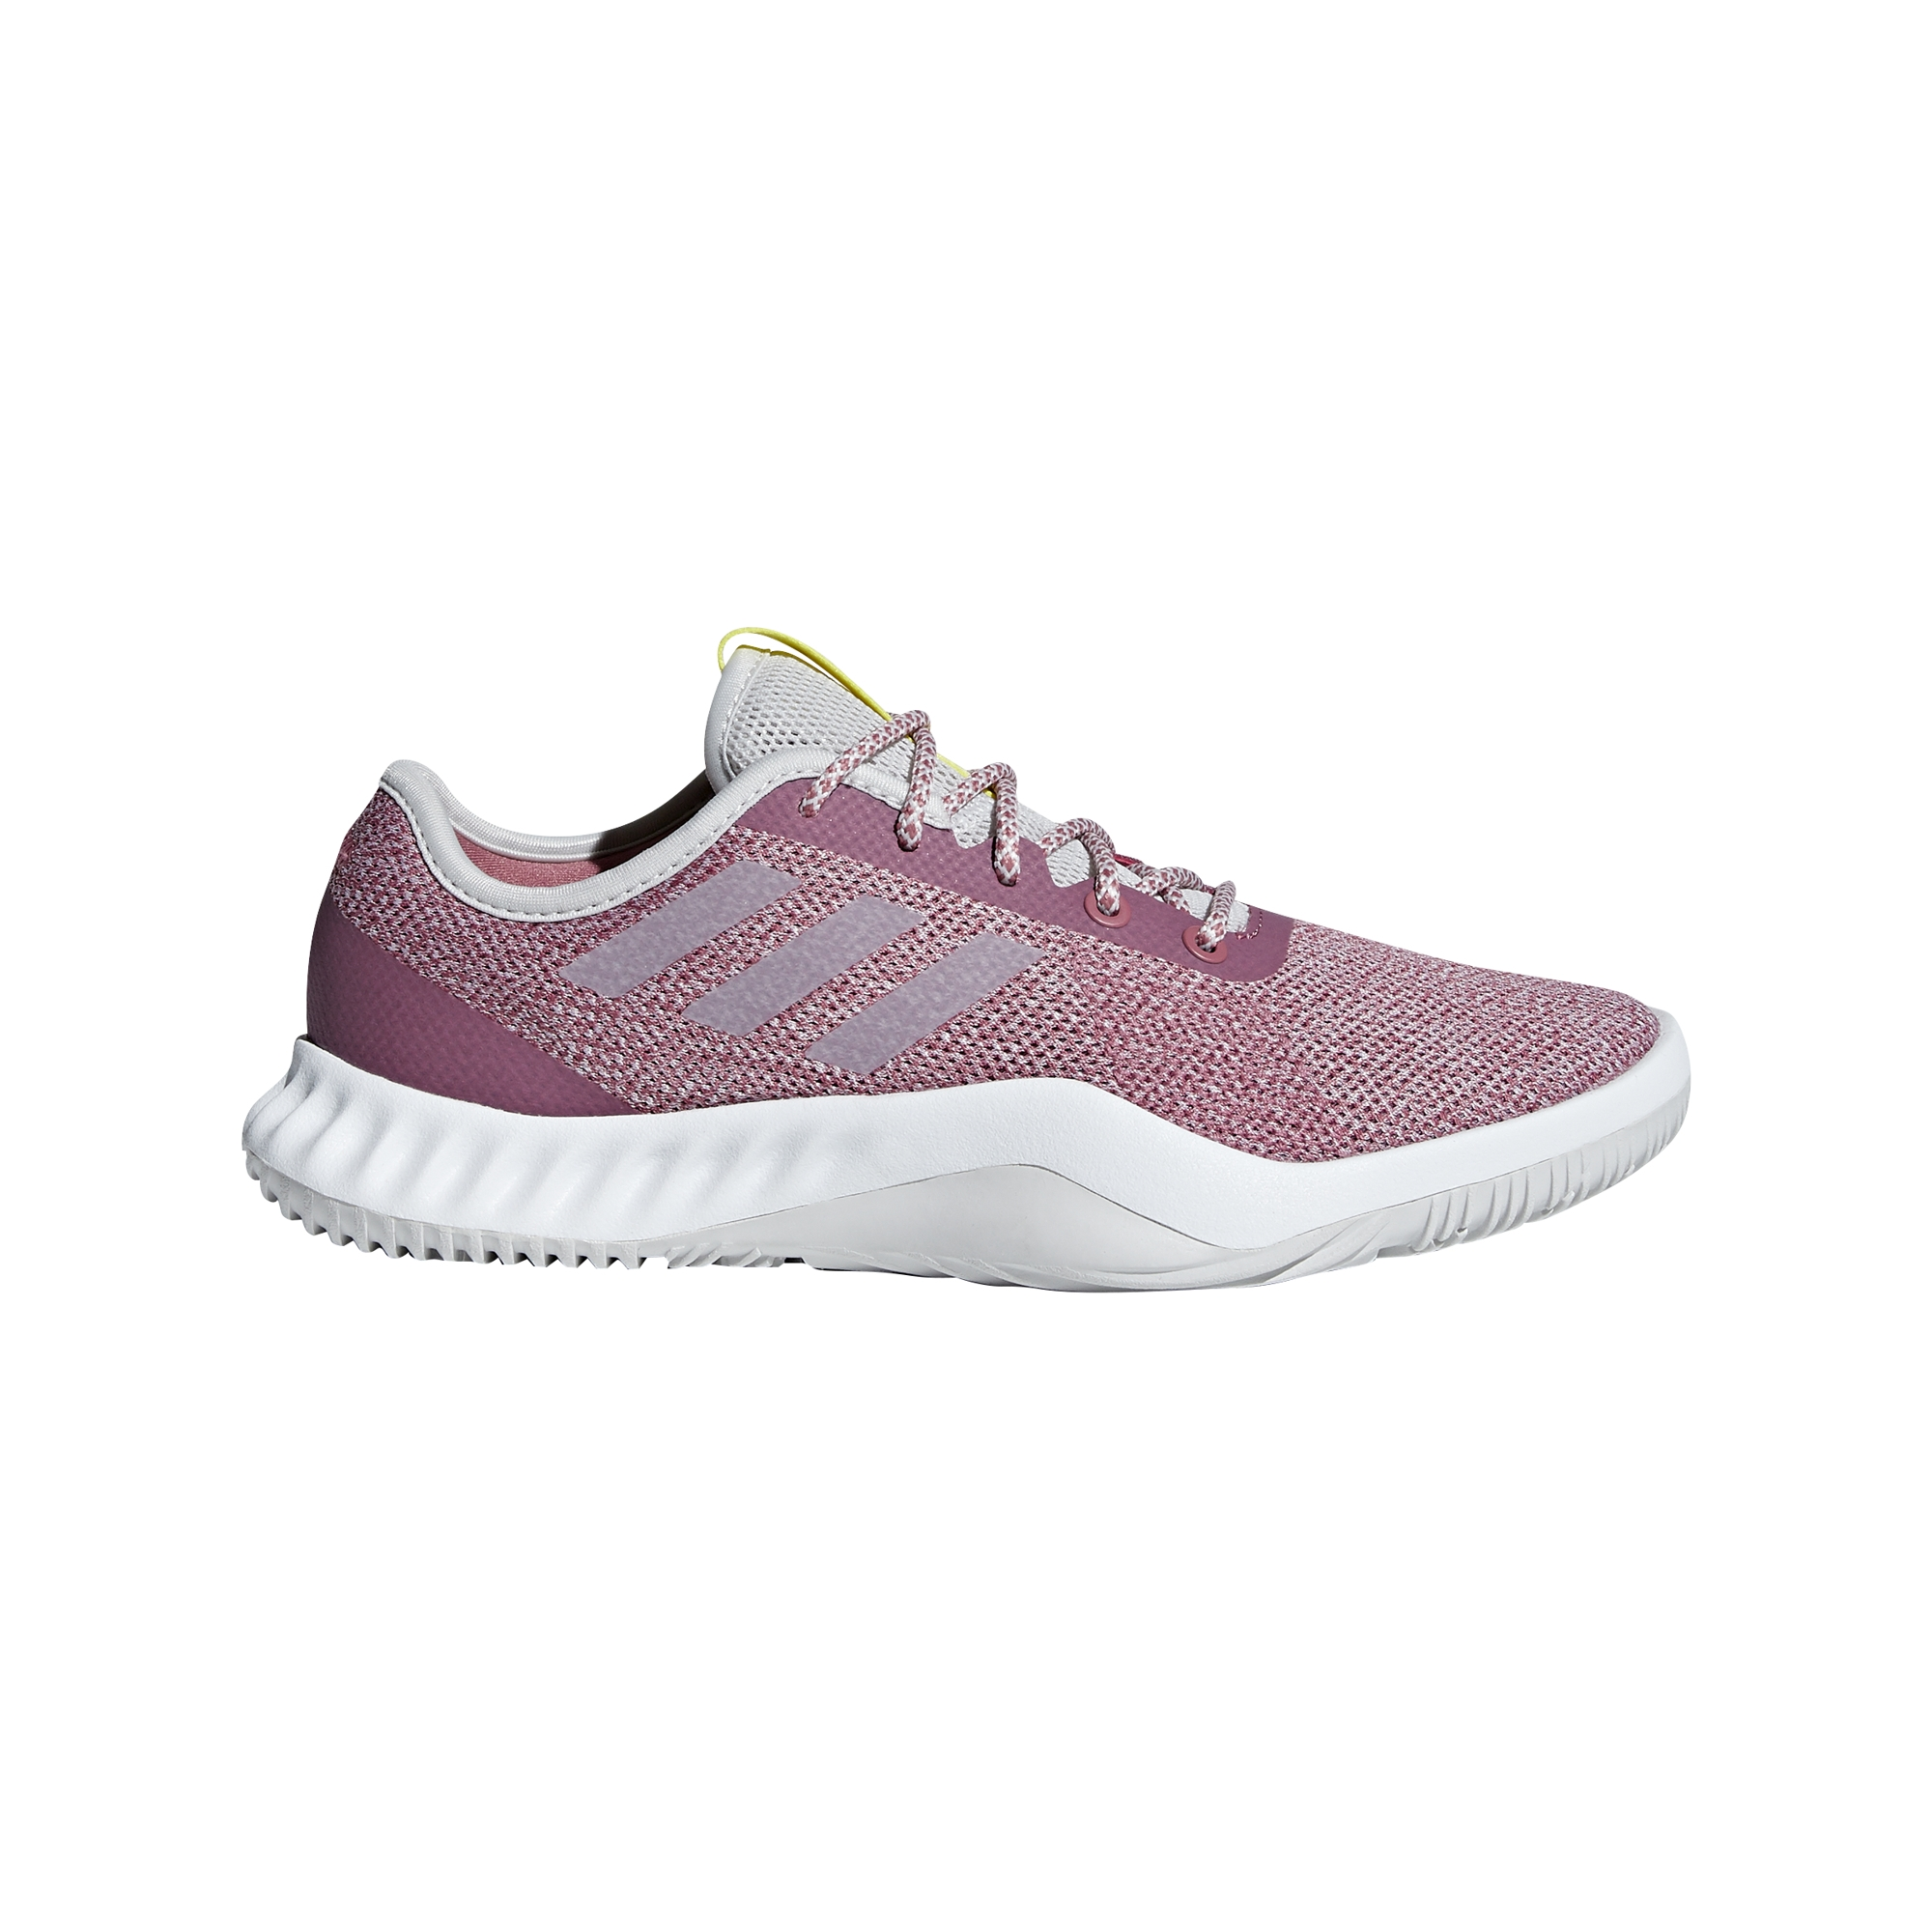 low priced 26eef ec262 Chaussures femme adidas CrazyTrain LT